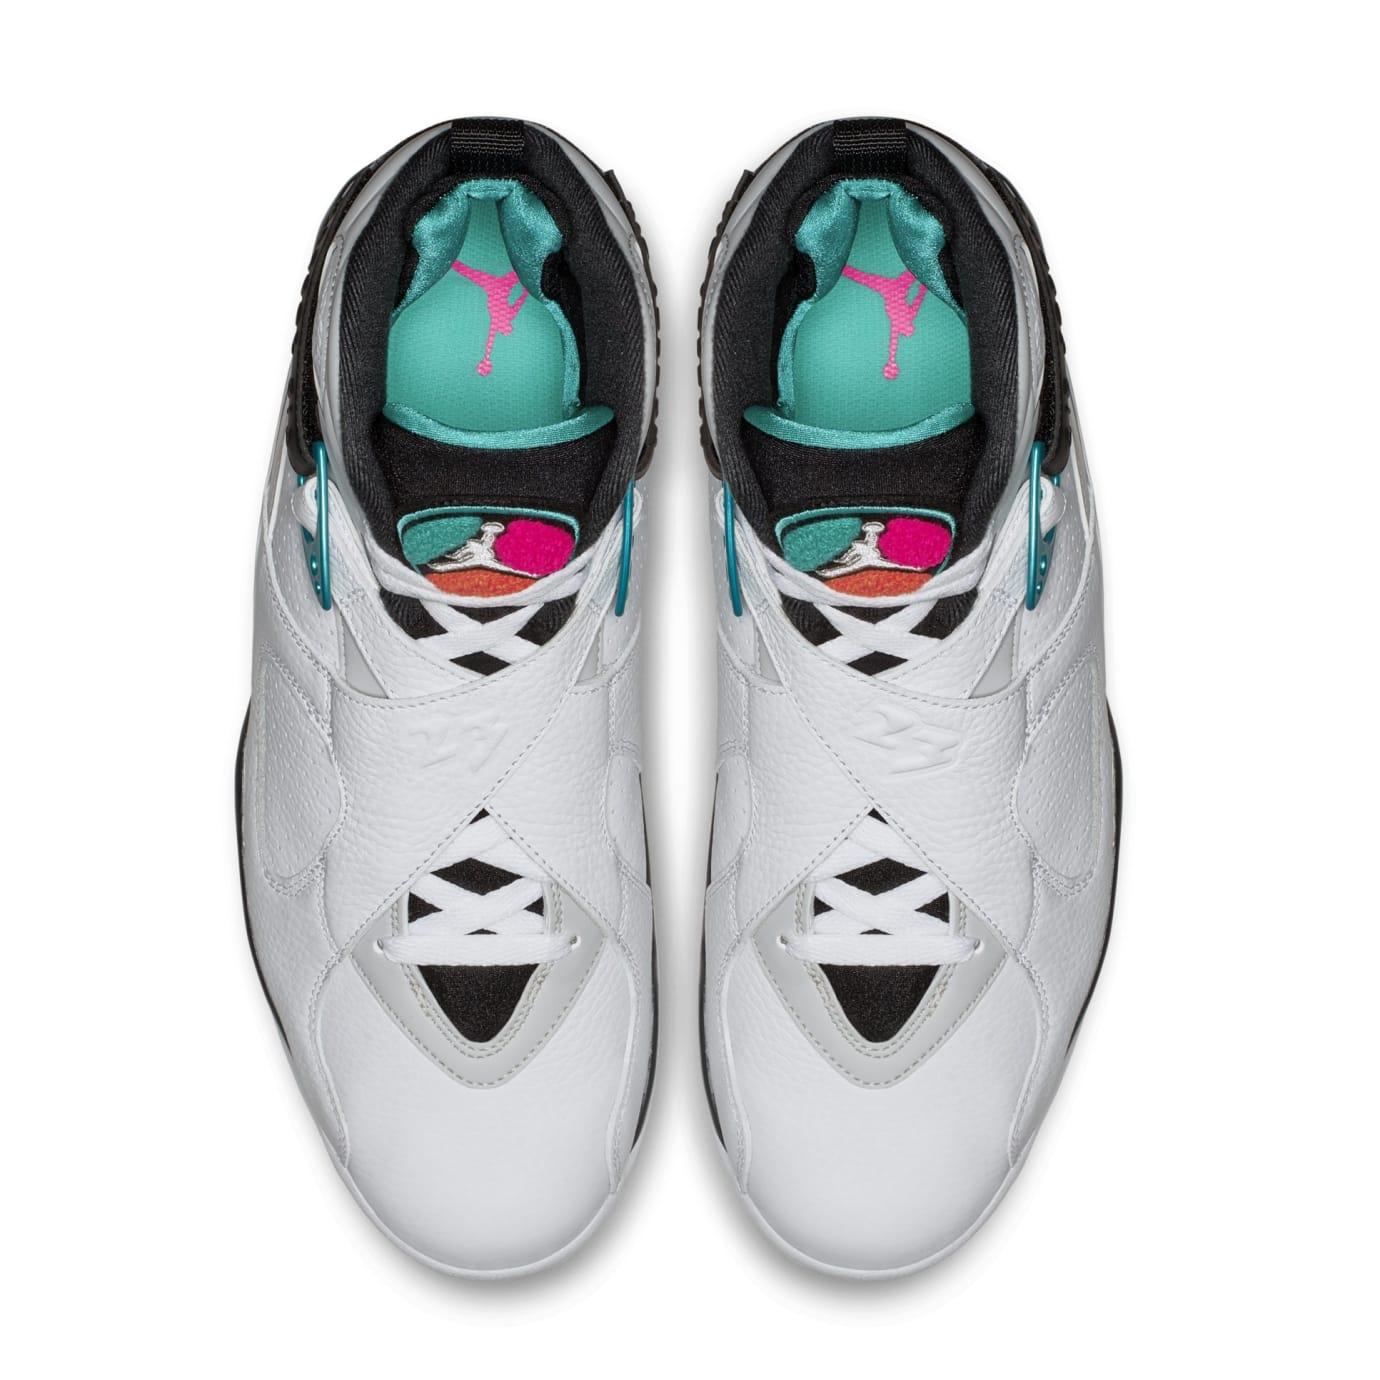 Air Jordan 8 VIII South Beach Release Date 305381-113  8c779cf76